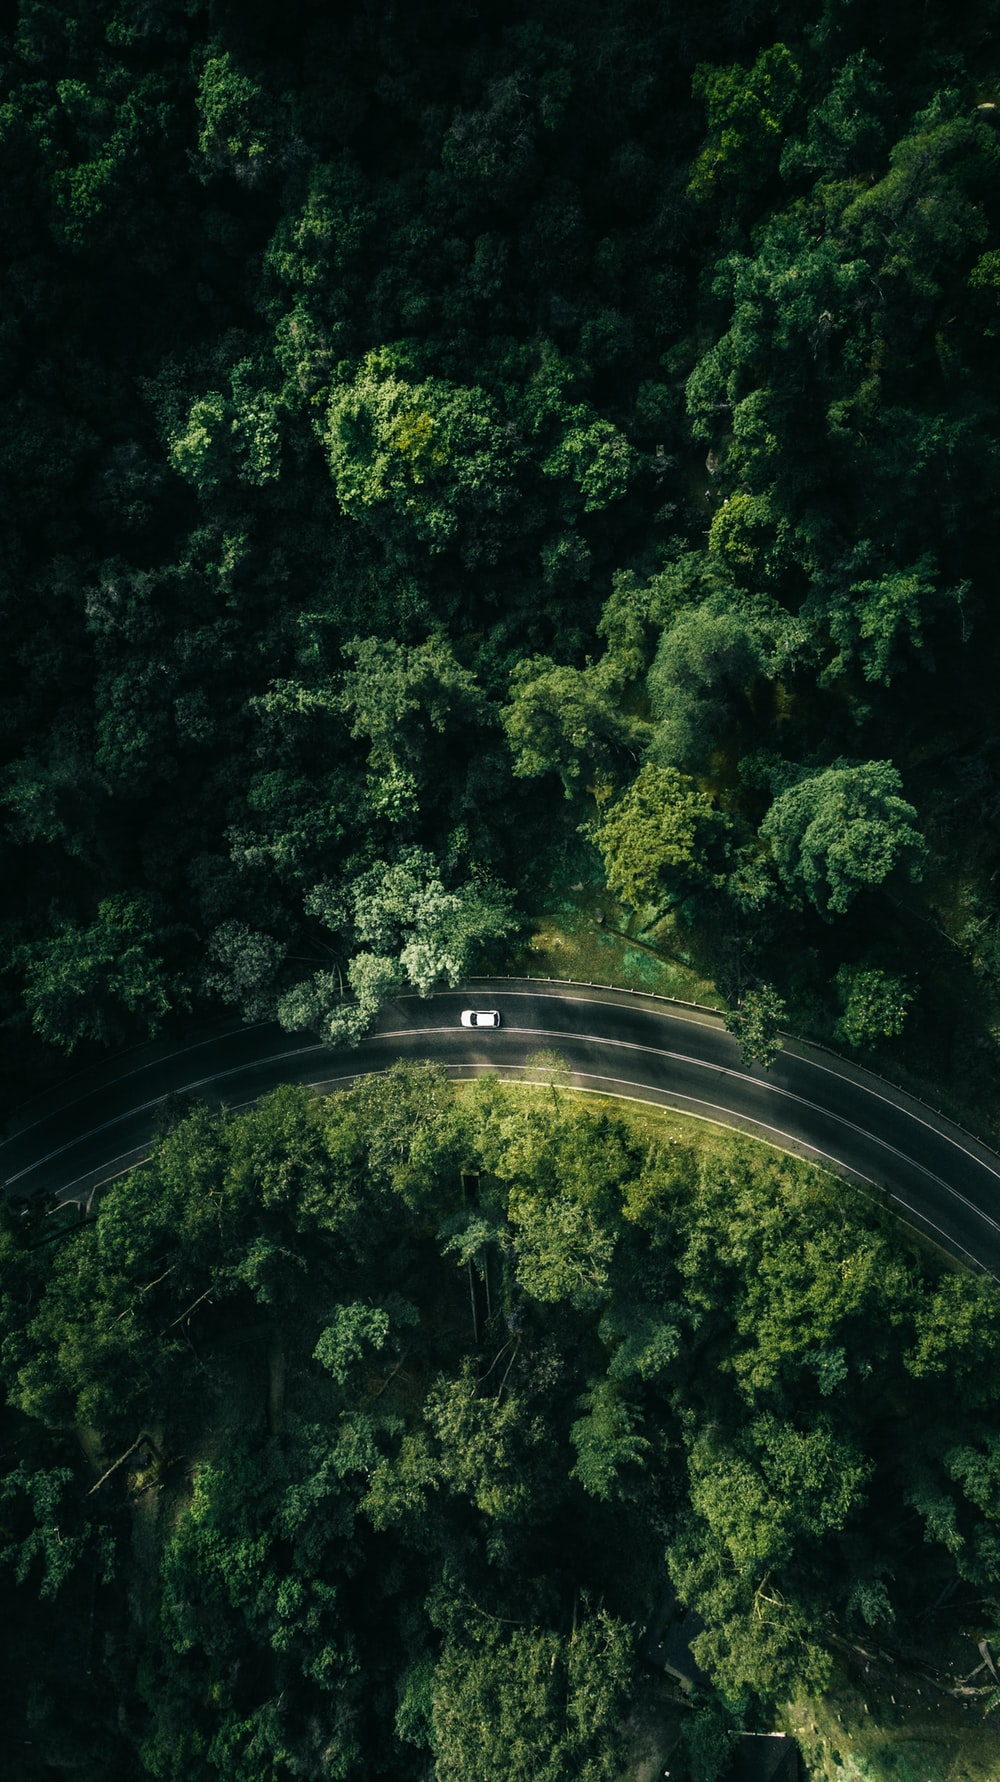 black and white road in the middle of green trees